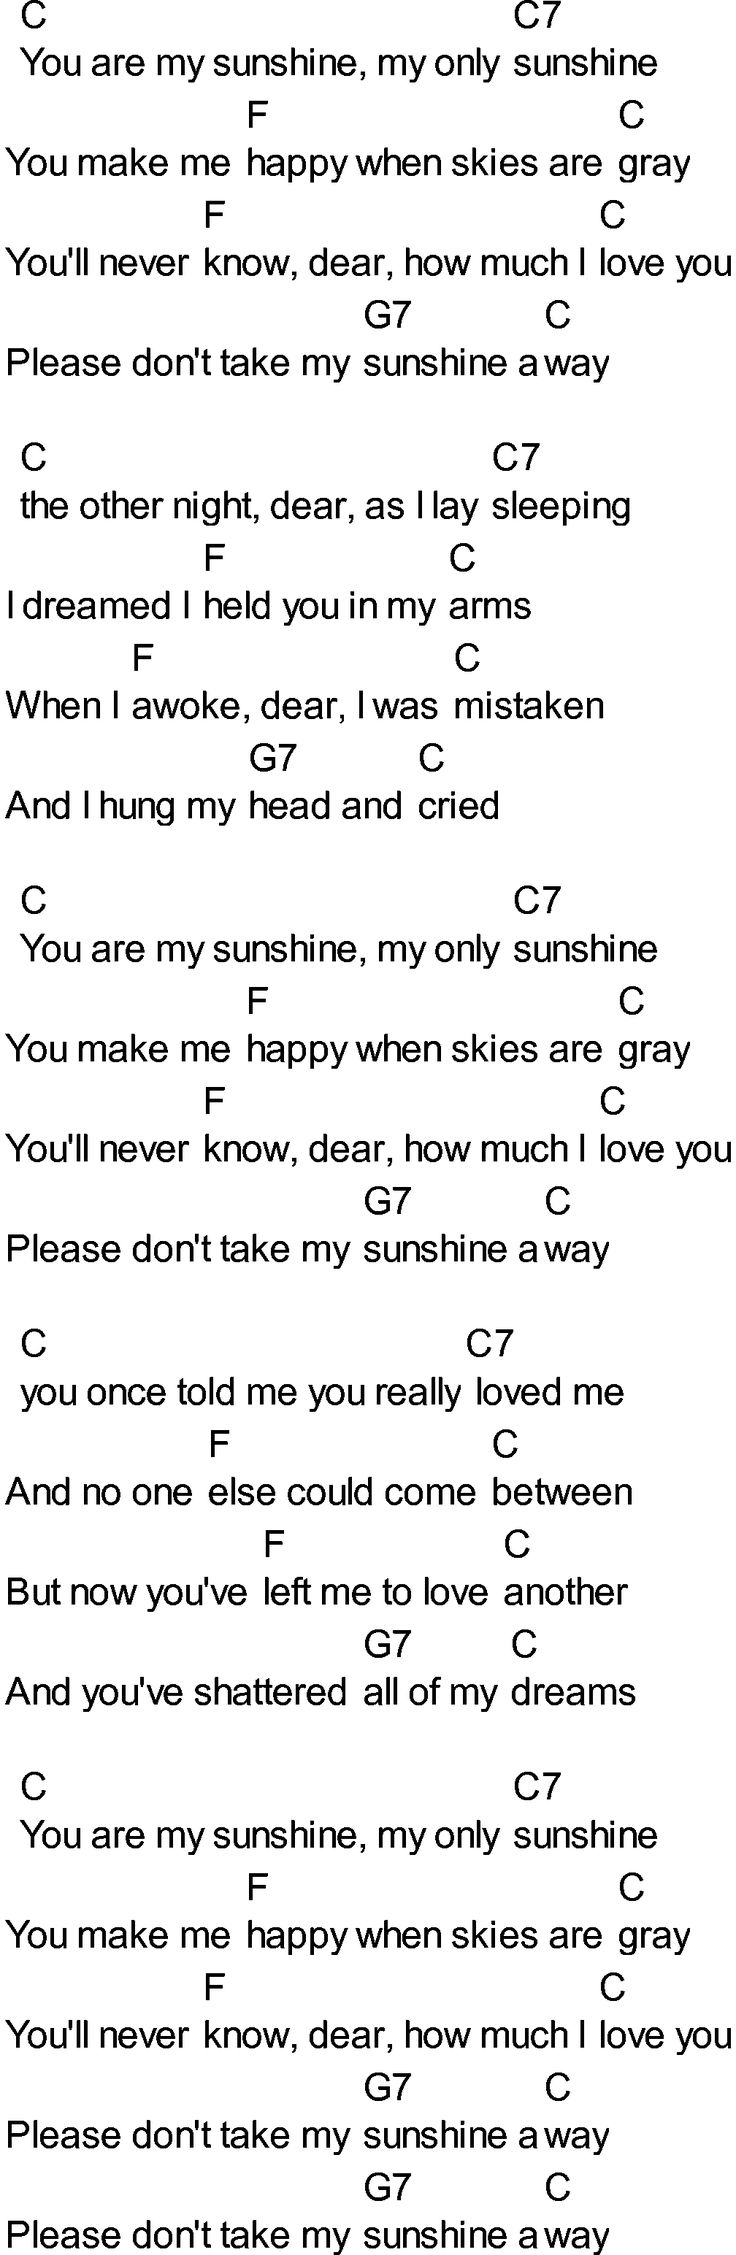 Bluegrass songs with chords - You Are My Sunshine..great site for blue grass tunes!!!